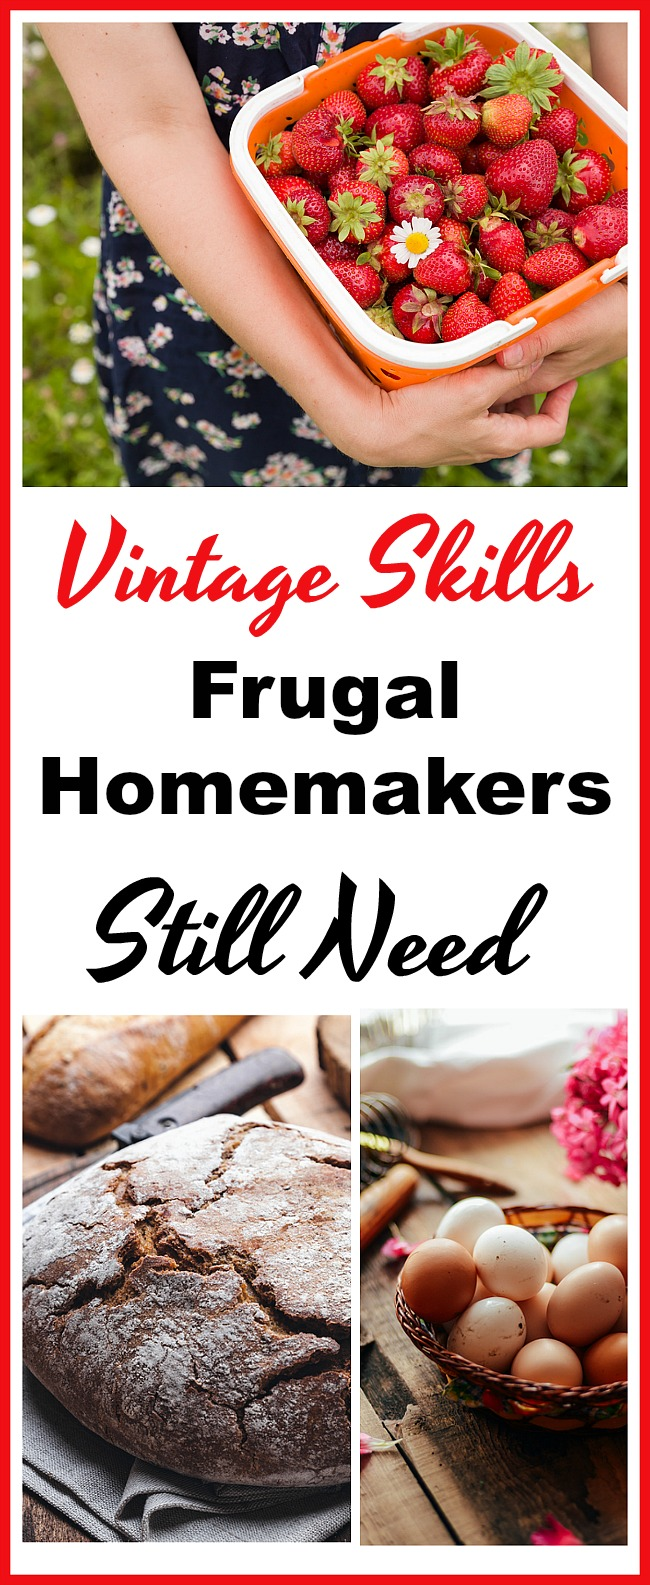 """Vintage Skills Frugal Homemakers Still Need - Once upon a time homemaking was all about """"Use it up, wear it out, make it do or do without."""" Despite technology and modern conveniences, there are still some vintage skills frugal homemakers need to have in order for them to navigate the art of frugal homemaking today. Frugal living, homemaker tips, old fashioned homemaking, homemaking 101, money saving tips, living on a budget, sahm, home management"""